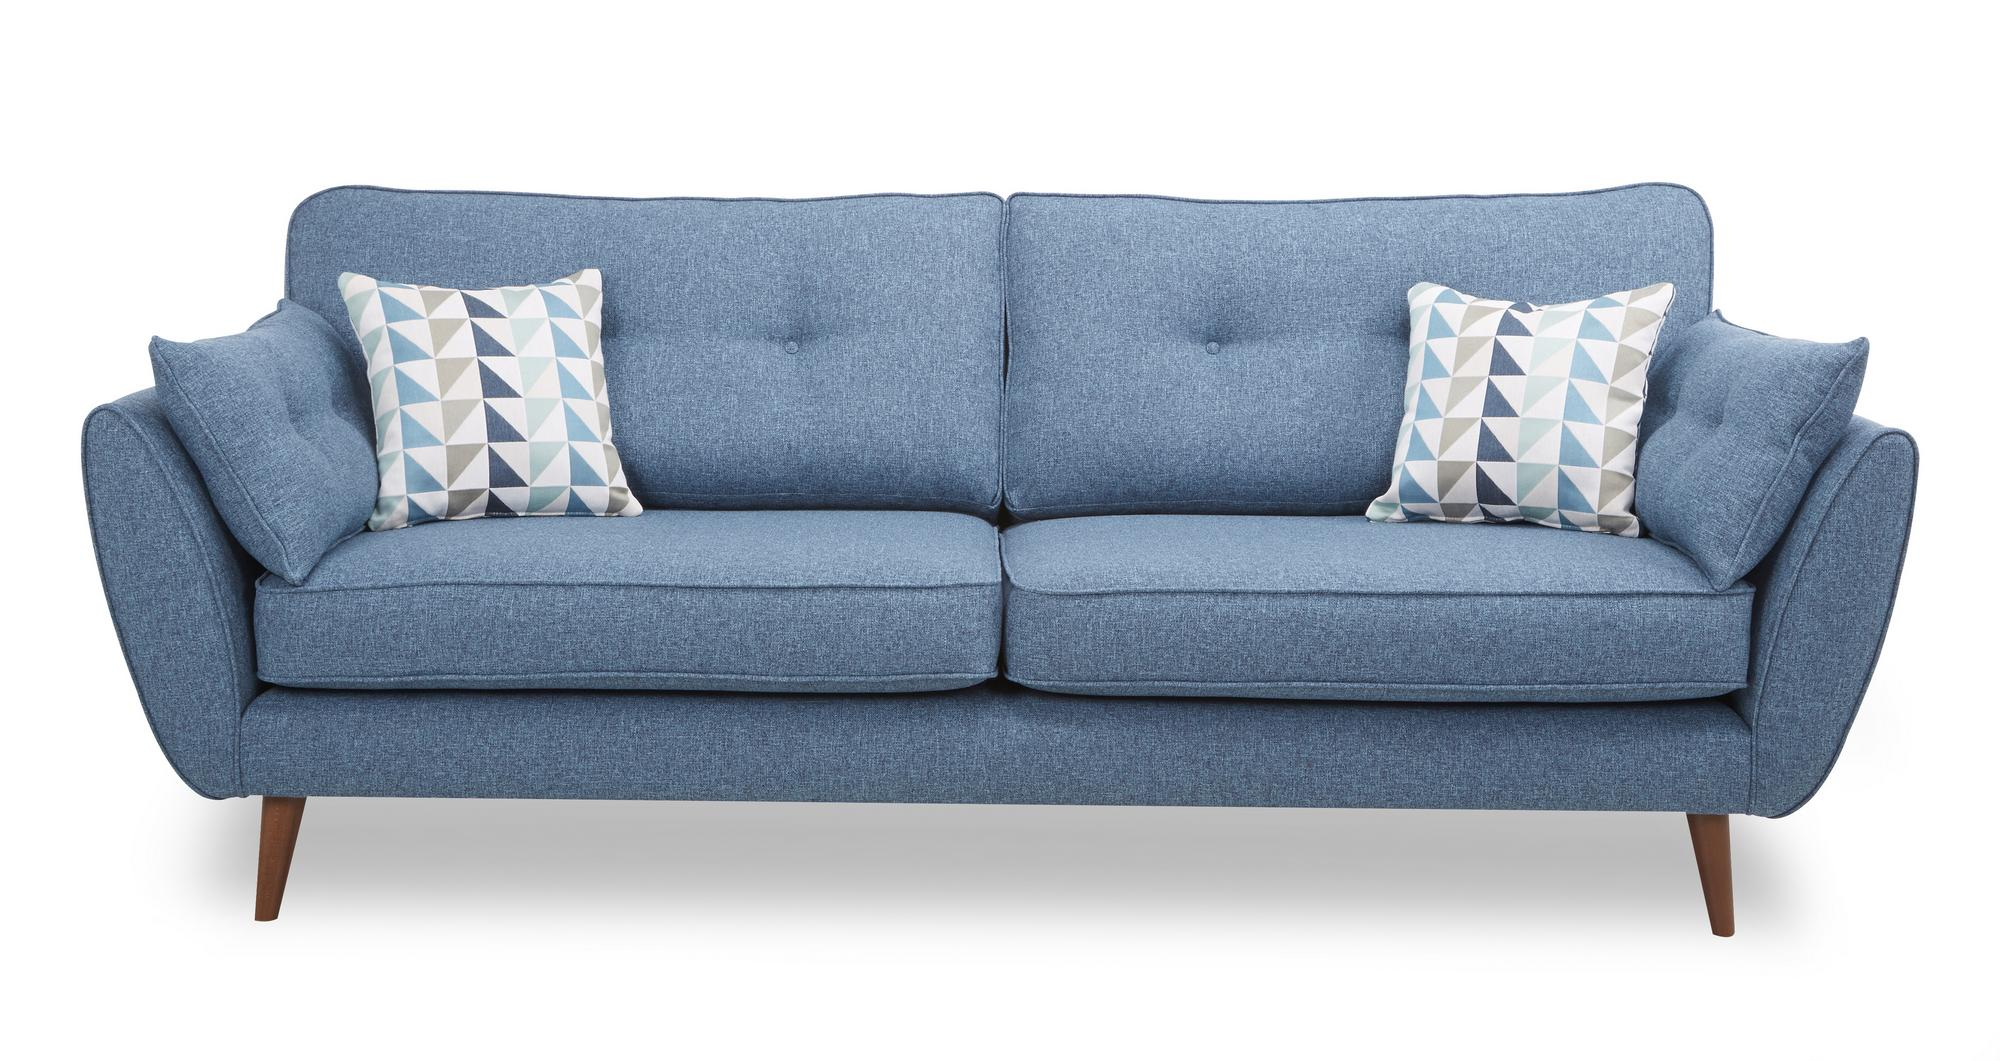 Dfs Zinc Teal Fabric 4 Seater Sofa 143888 Ebay